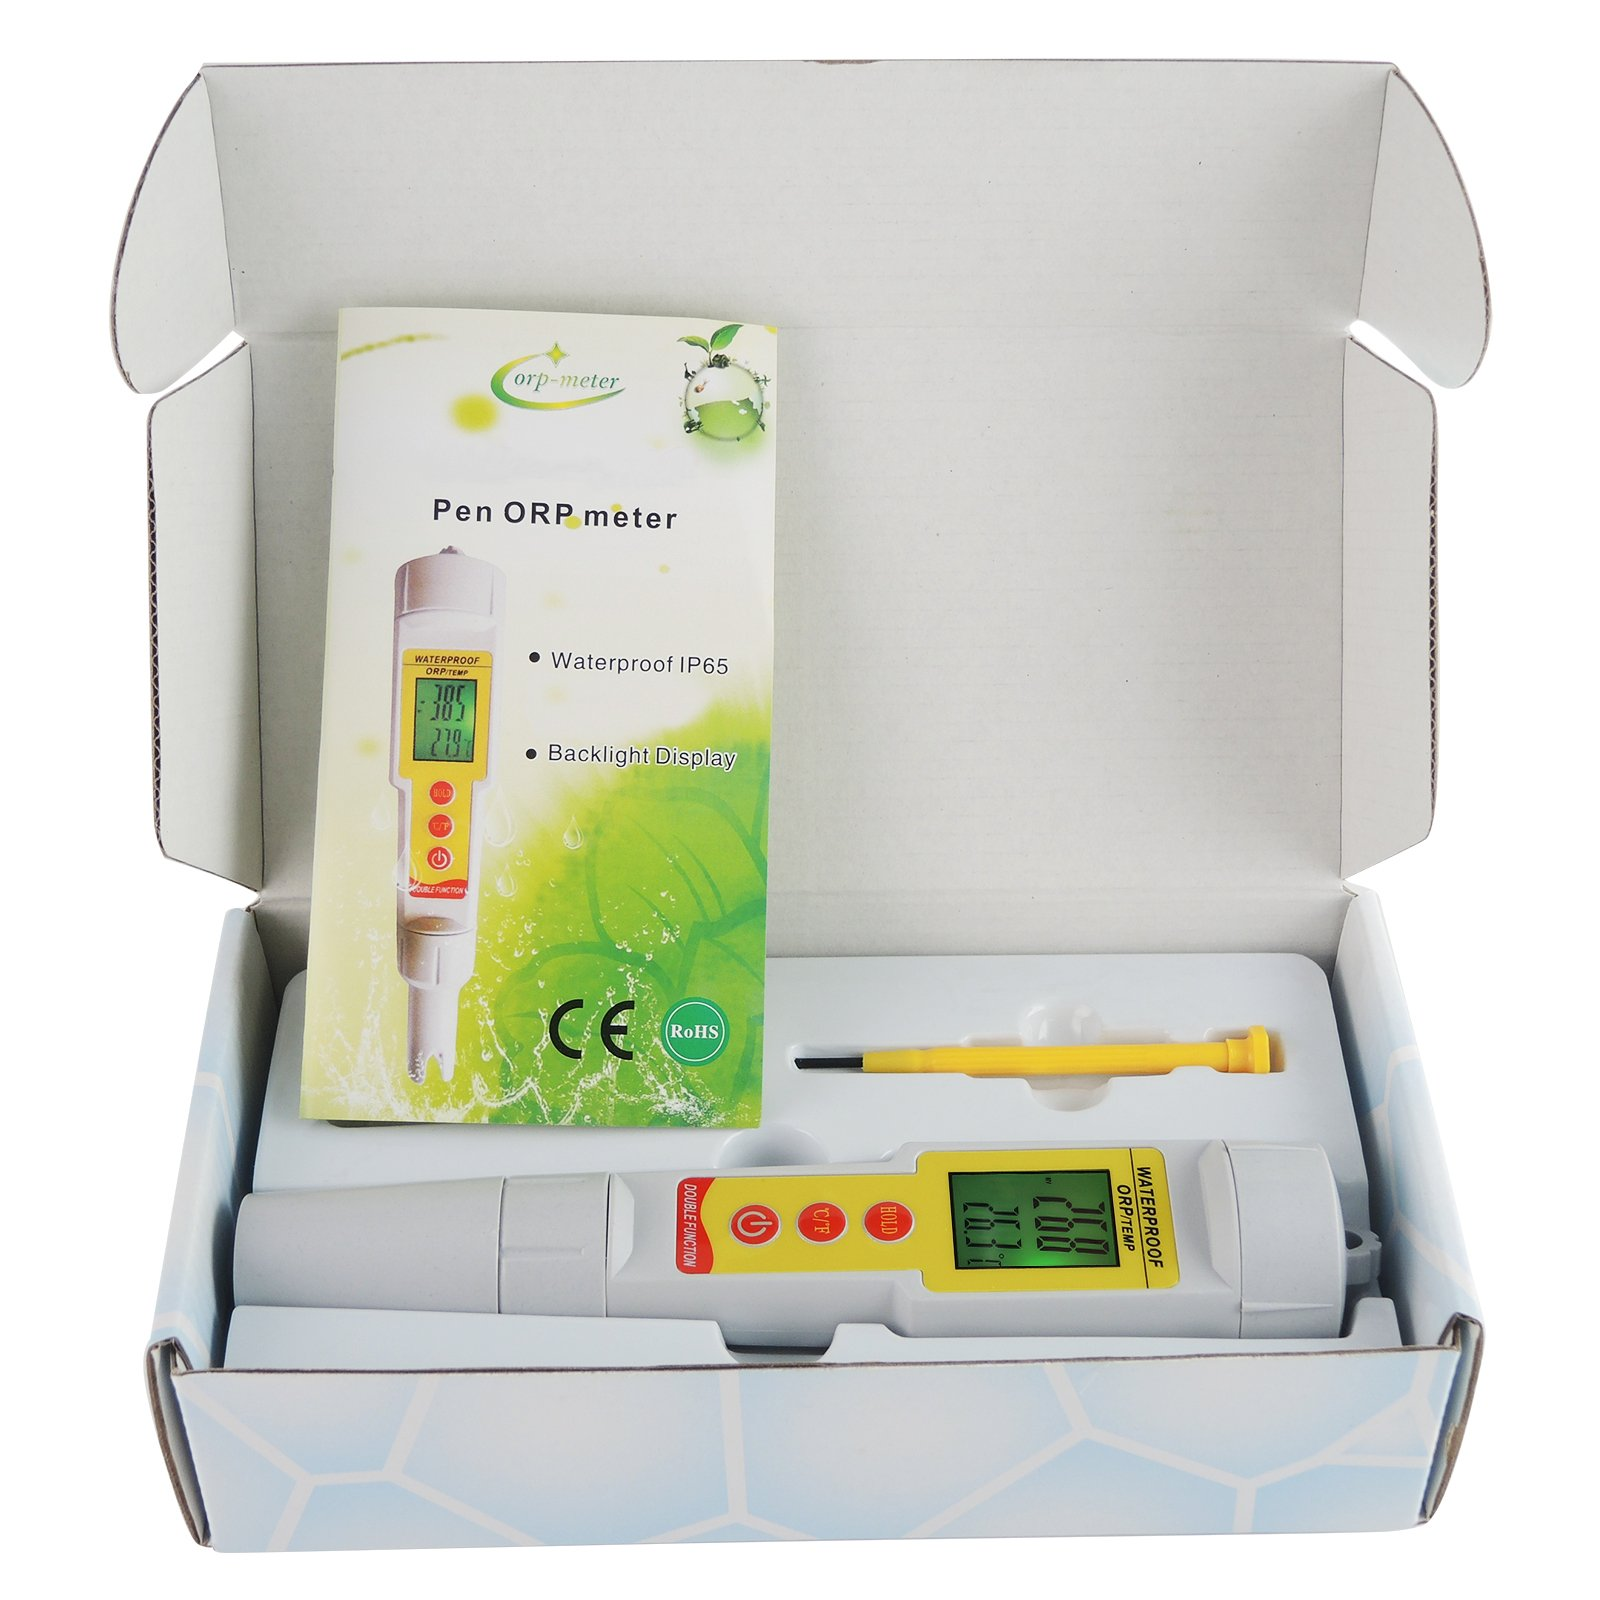 Gain Express 2-in-1 Pen Type ORP & Temperature (°C/ °F) Meter Thermometer Water Quality Tester IP65 Waterproof Level by Gain Express (Image #2)